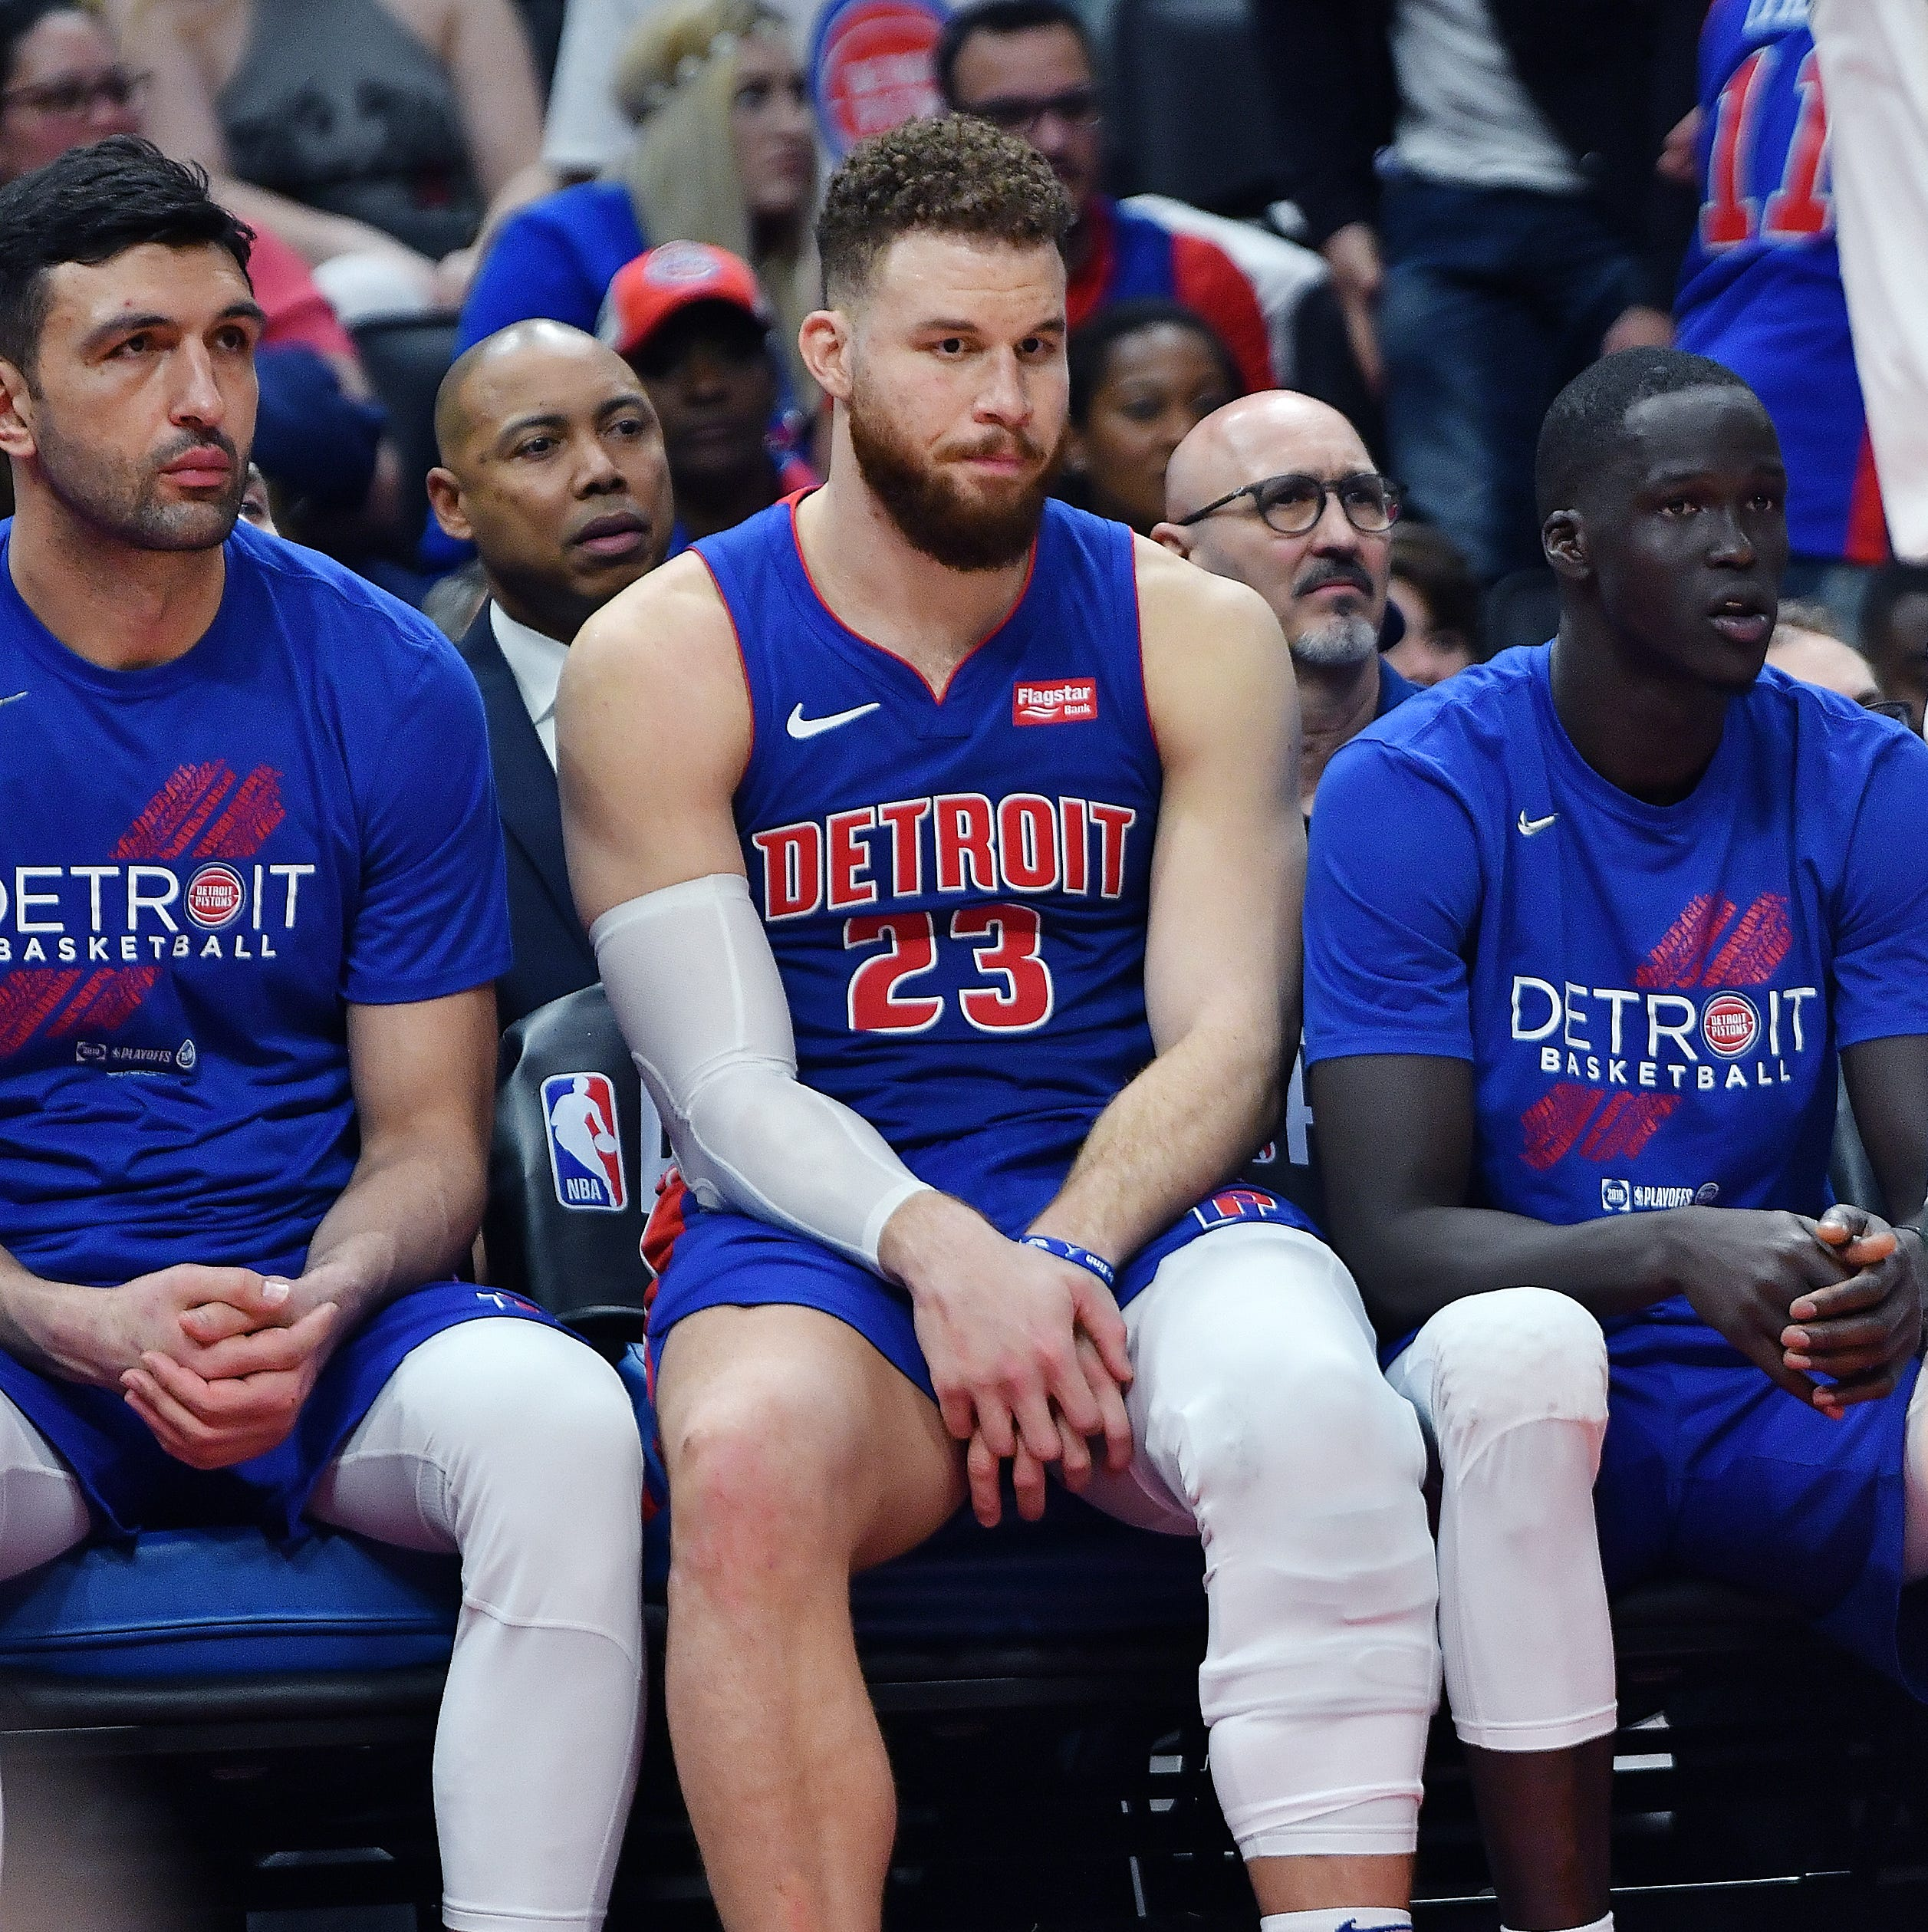 Niyo: Griffin dug deep while others flailed in Pistons' playoff defeat